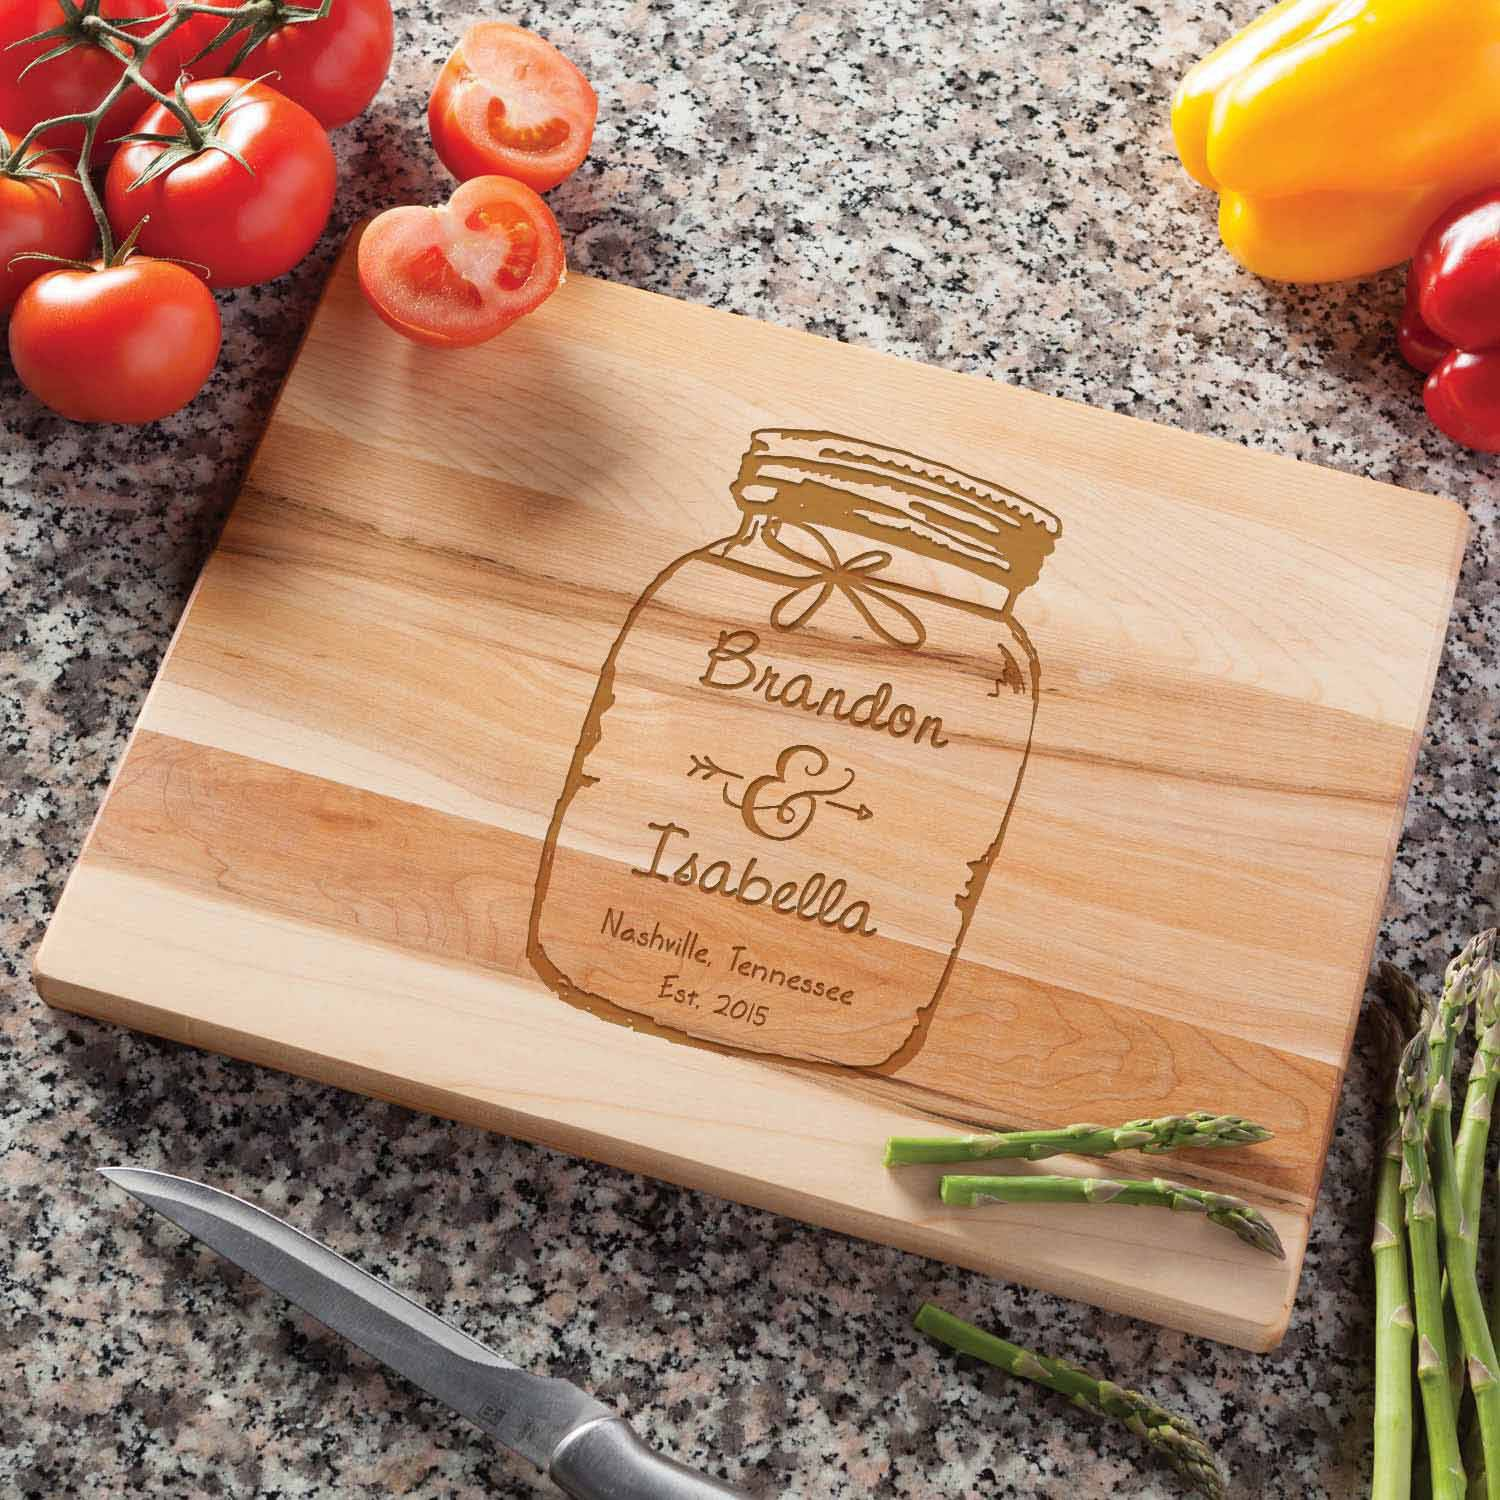 Personalized Mason Jar Cutting Board